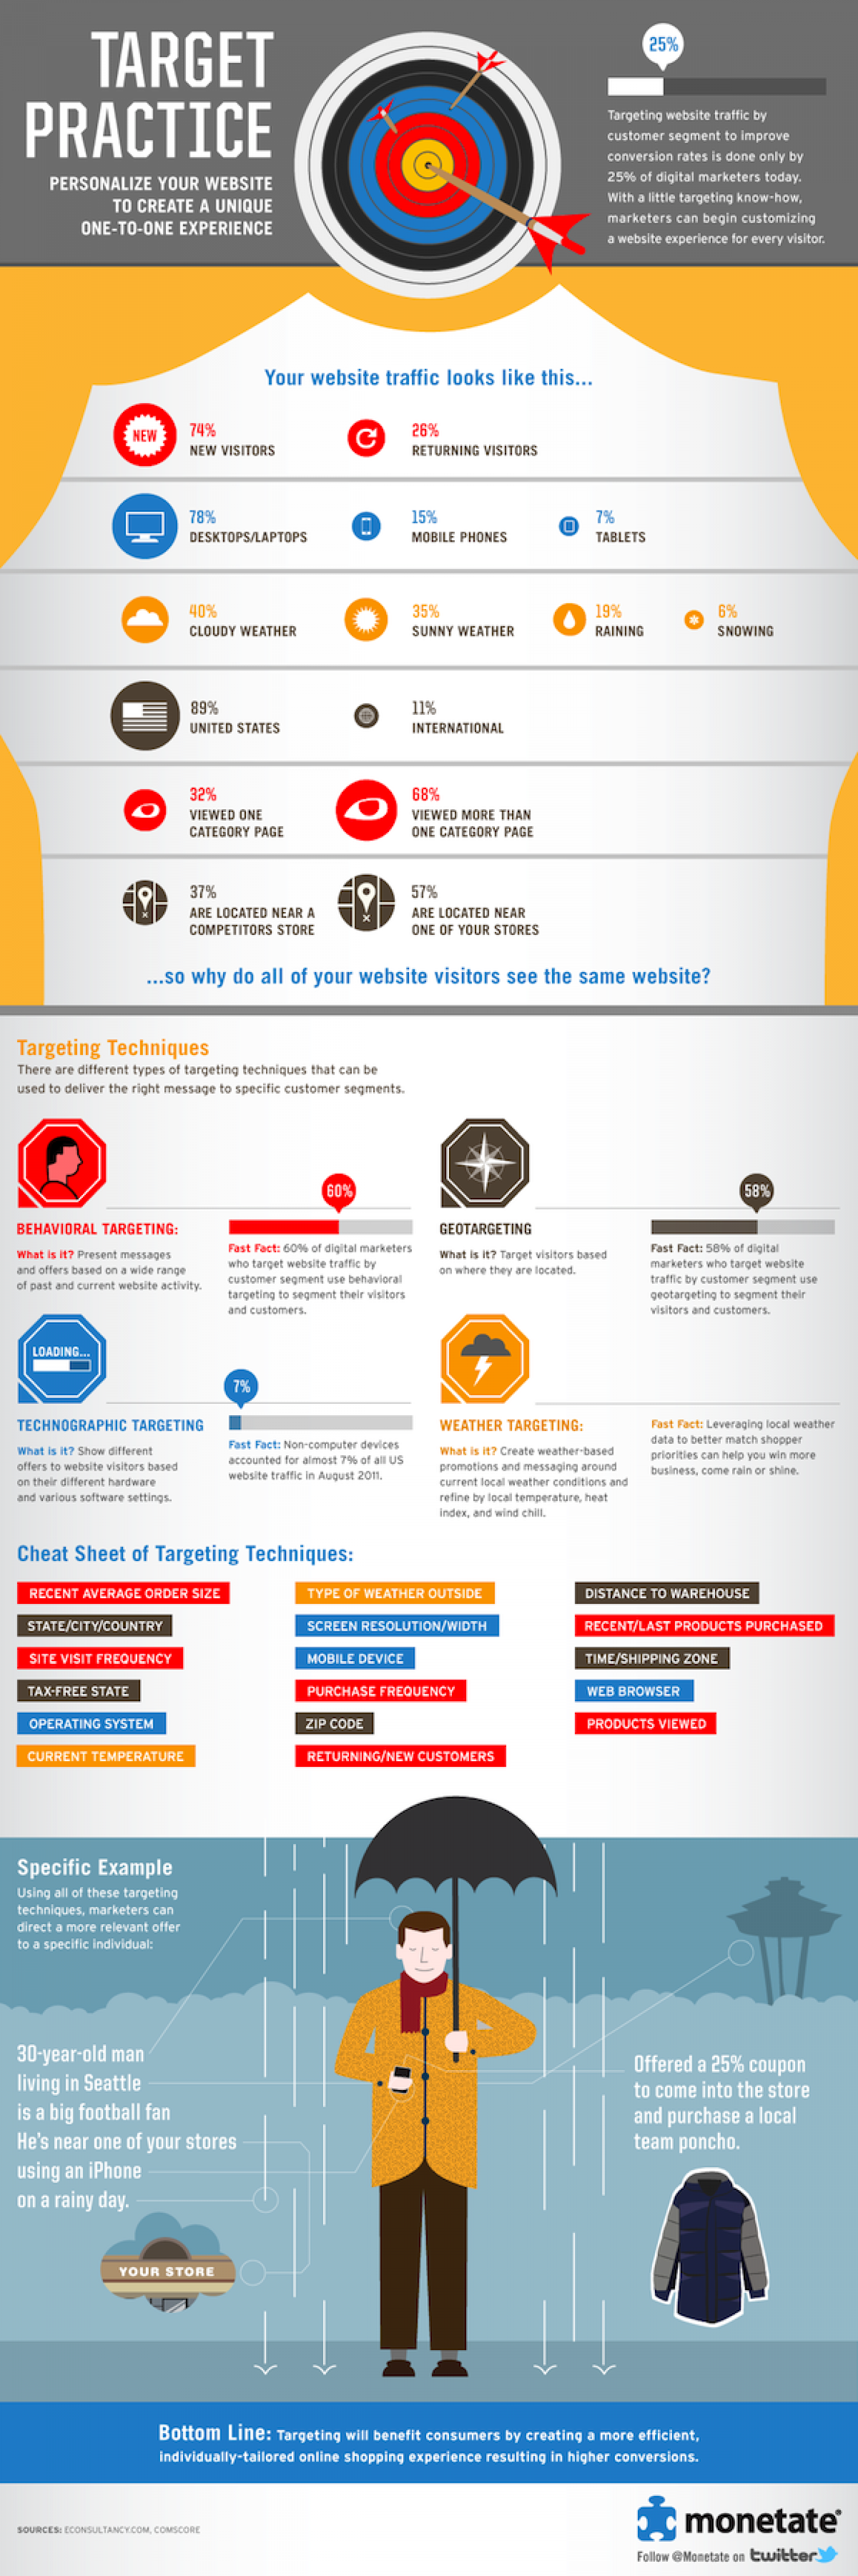 Target Practice: Personalize Your Website to Create a Unique One-to-One Experience Infographic